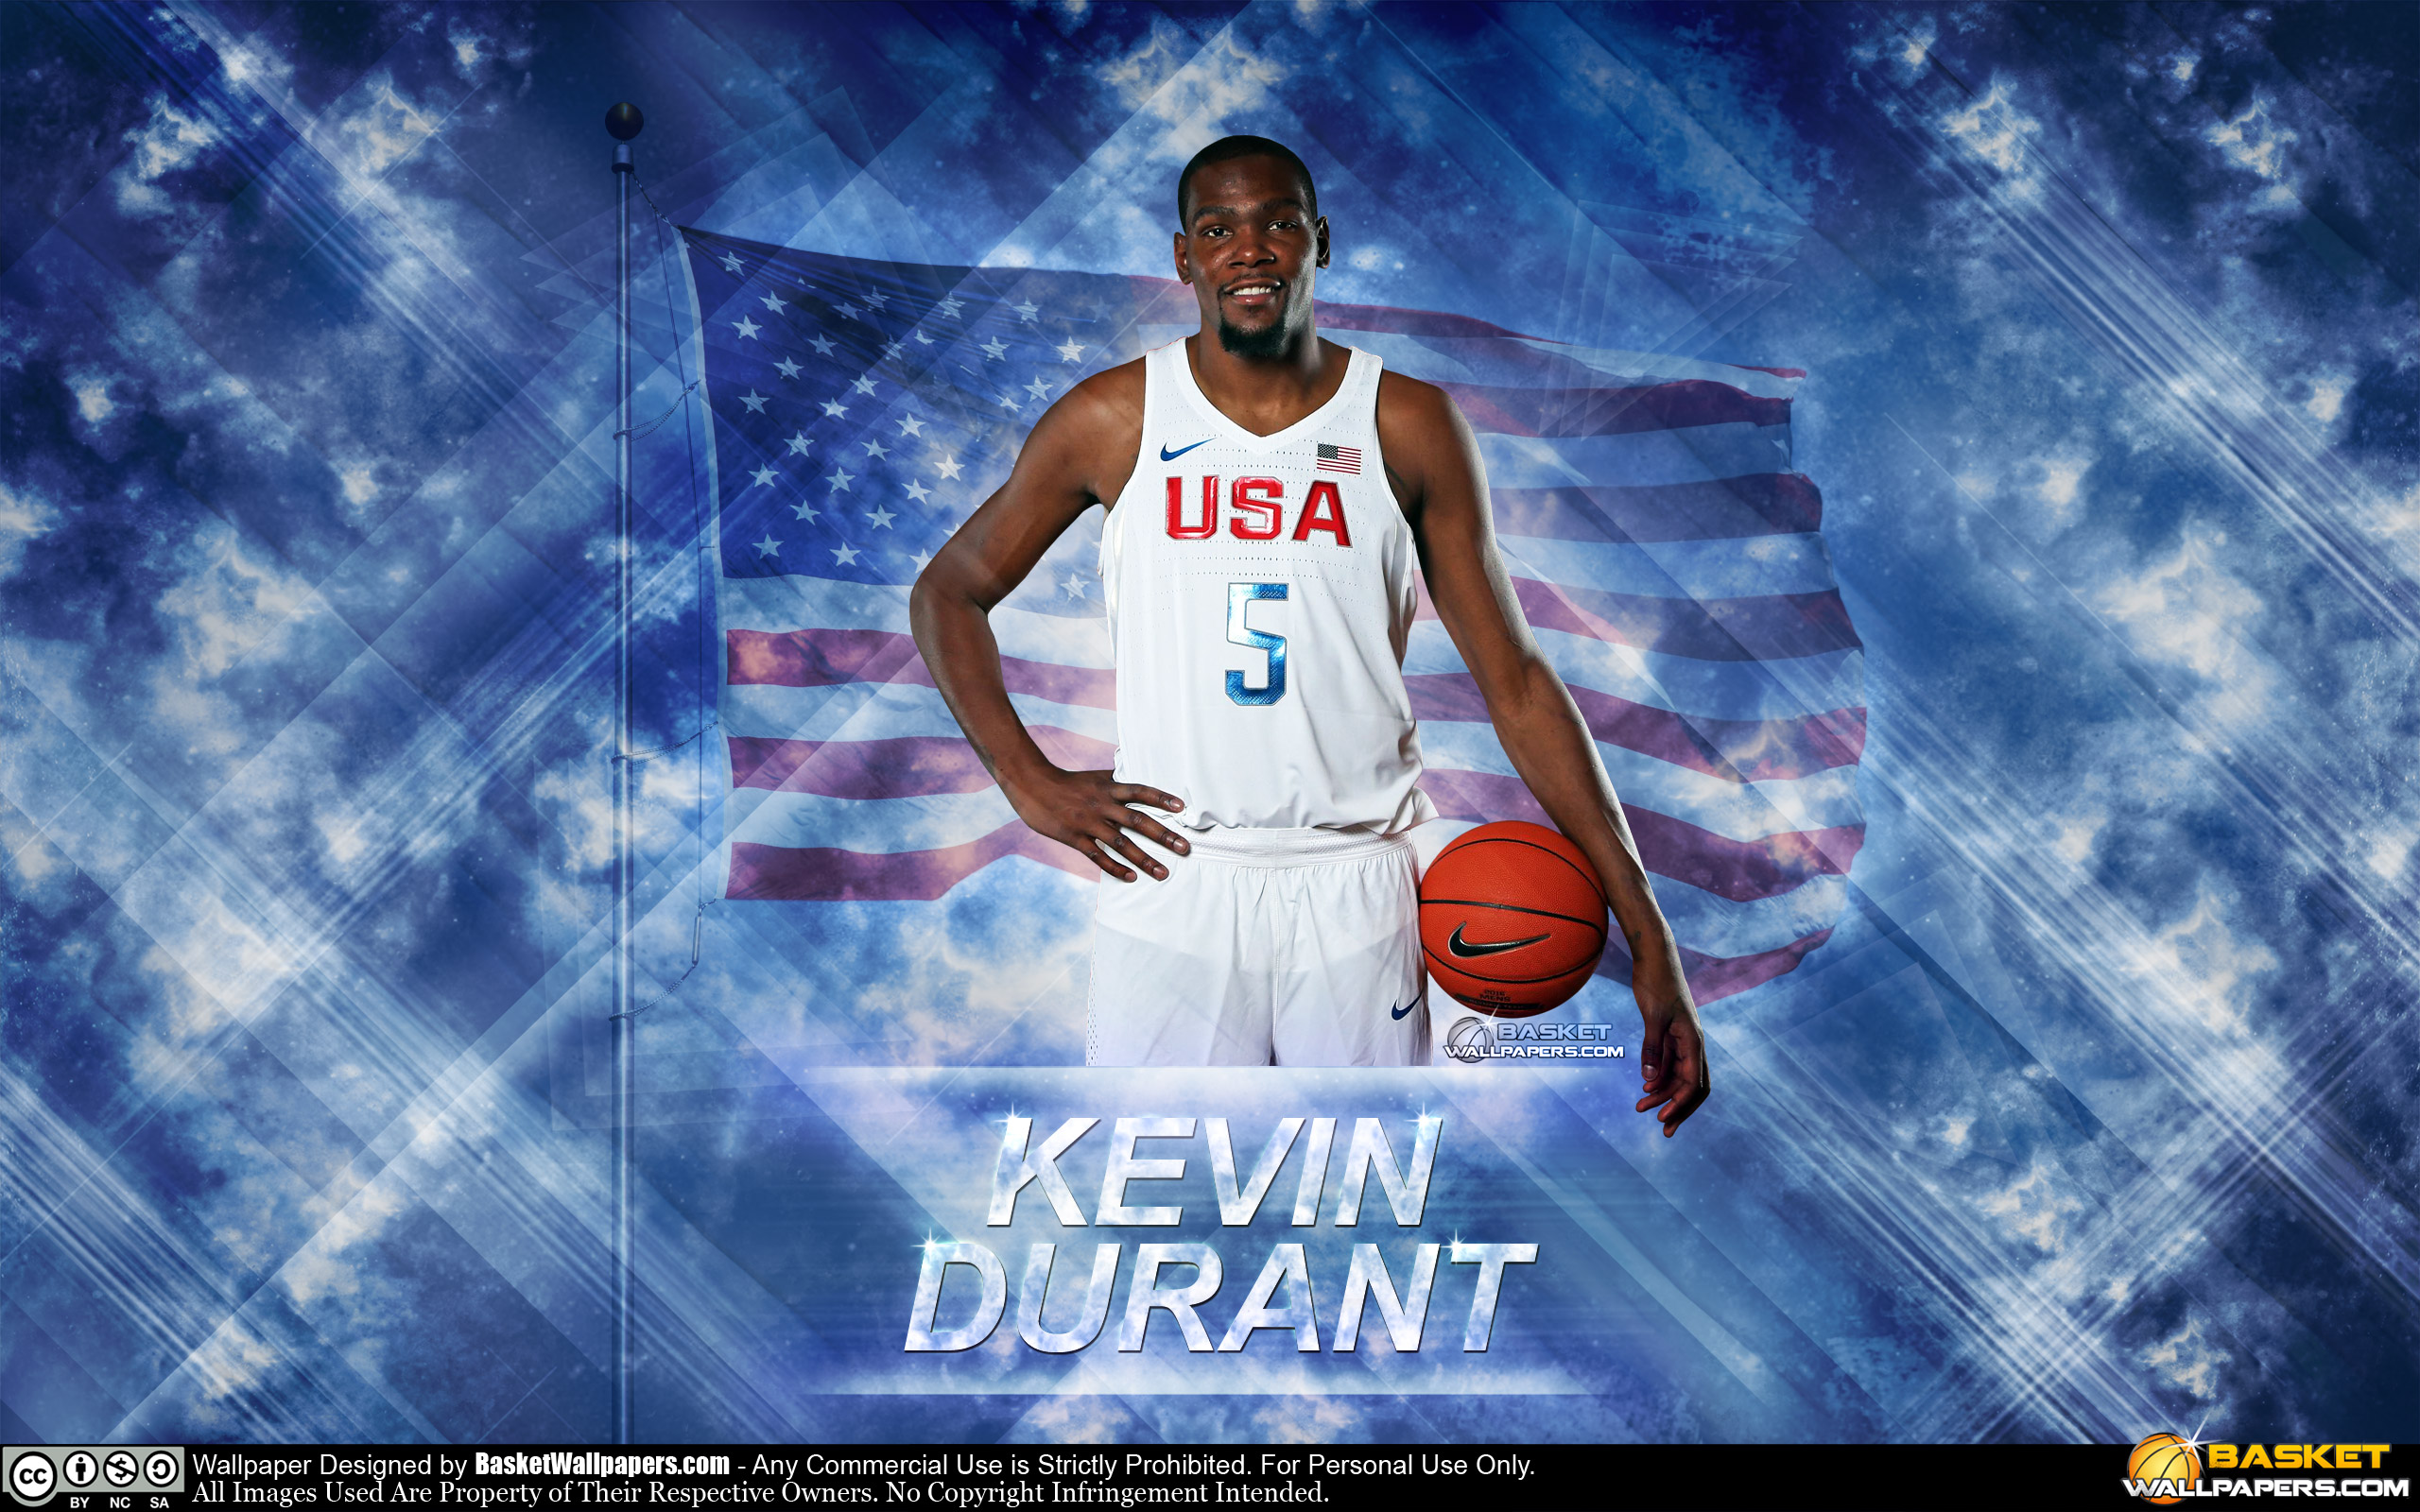 Kevin Durant USA 2016 Olympics Wallpaper